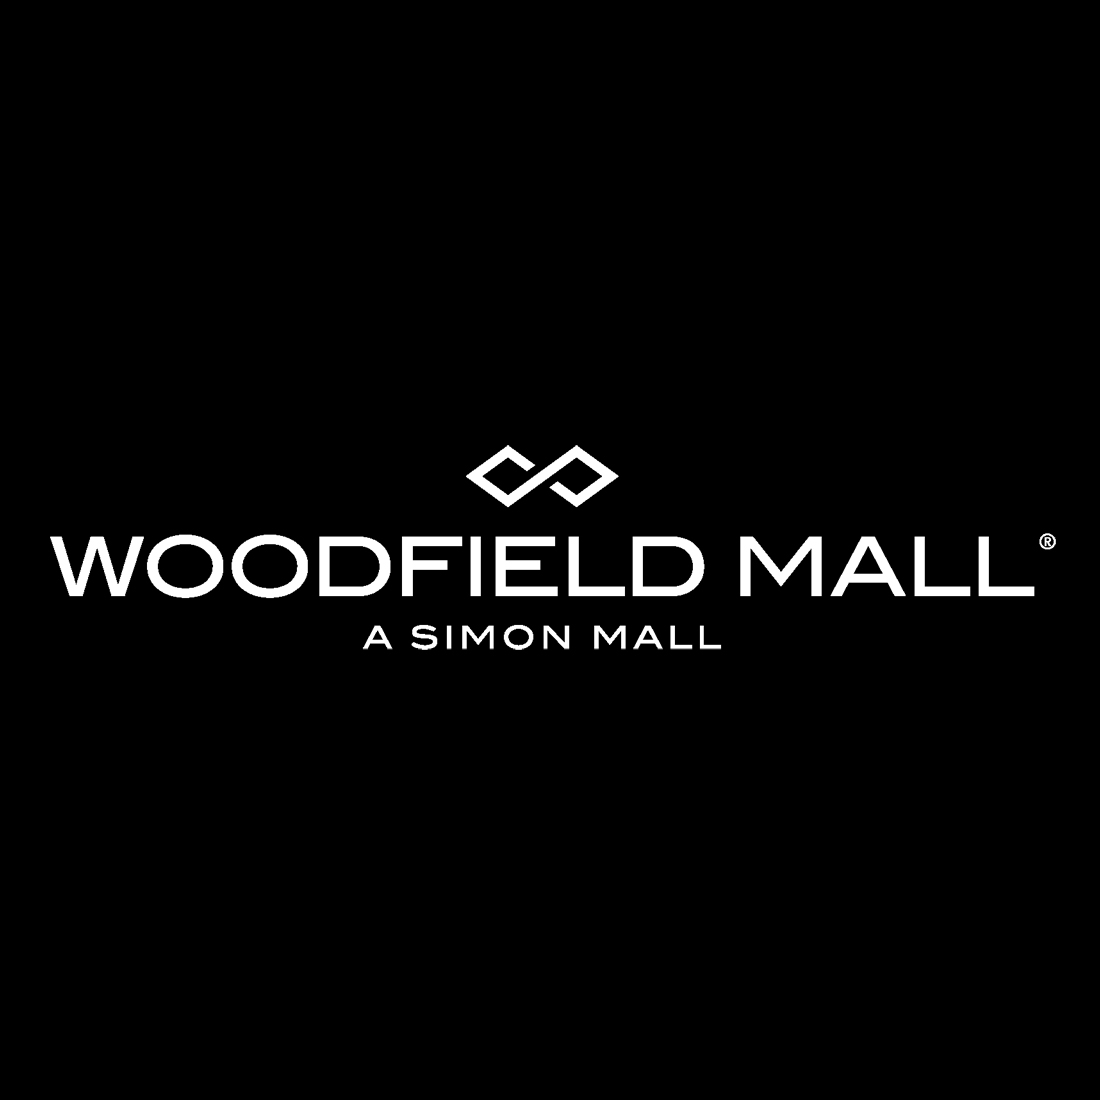 Woodfield Mall image 17